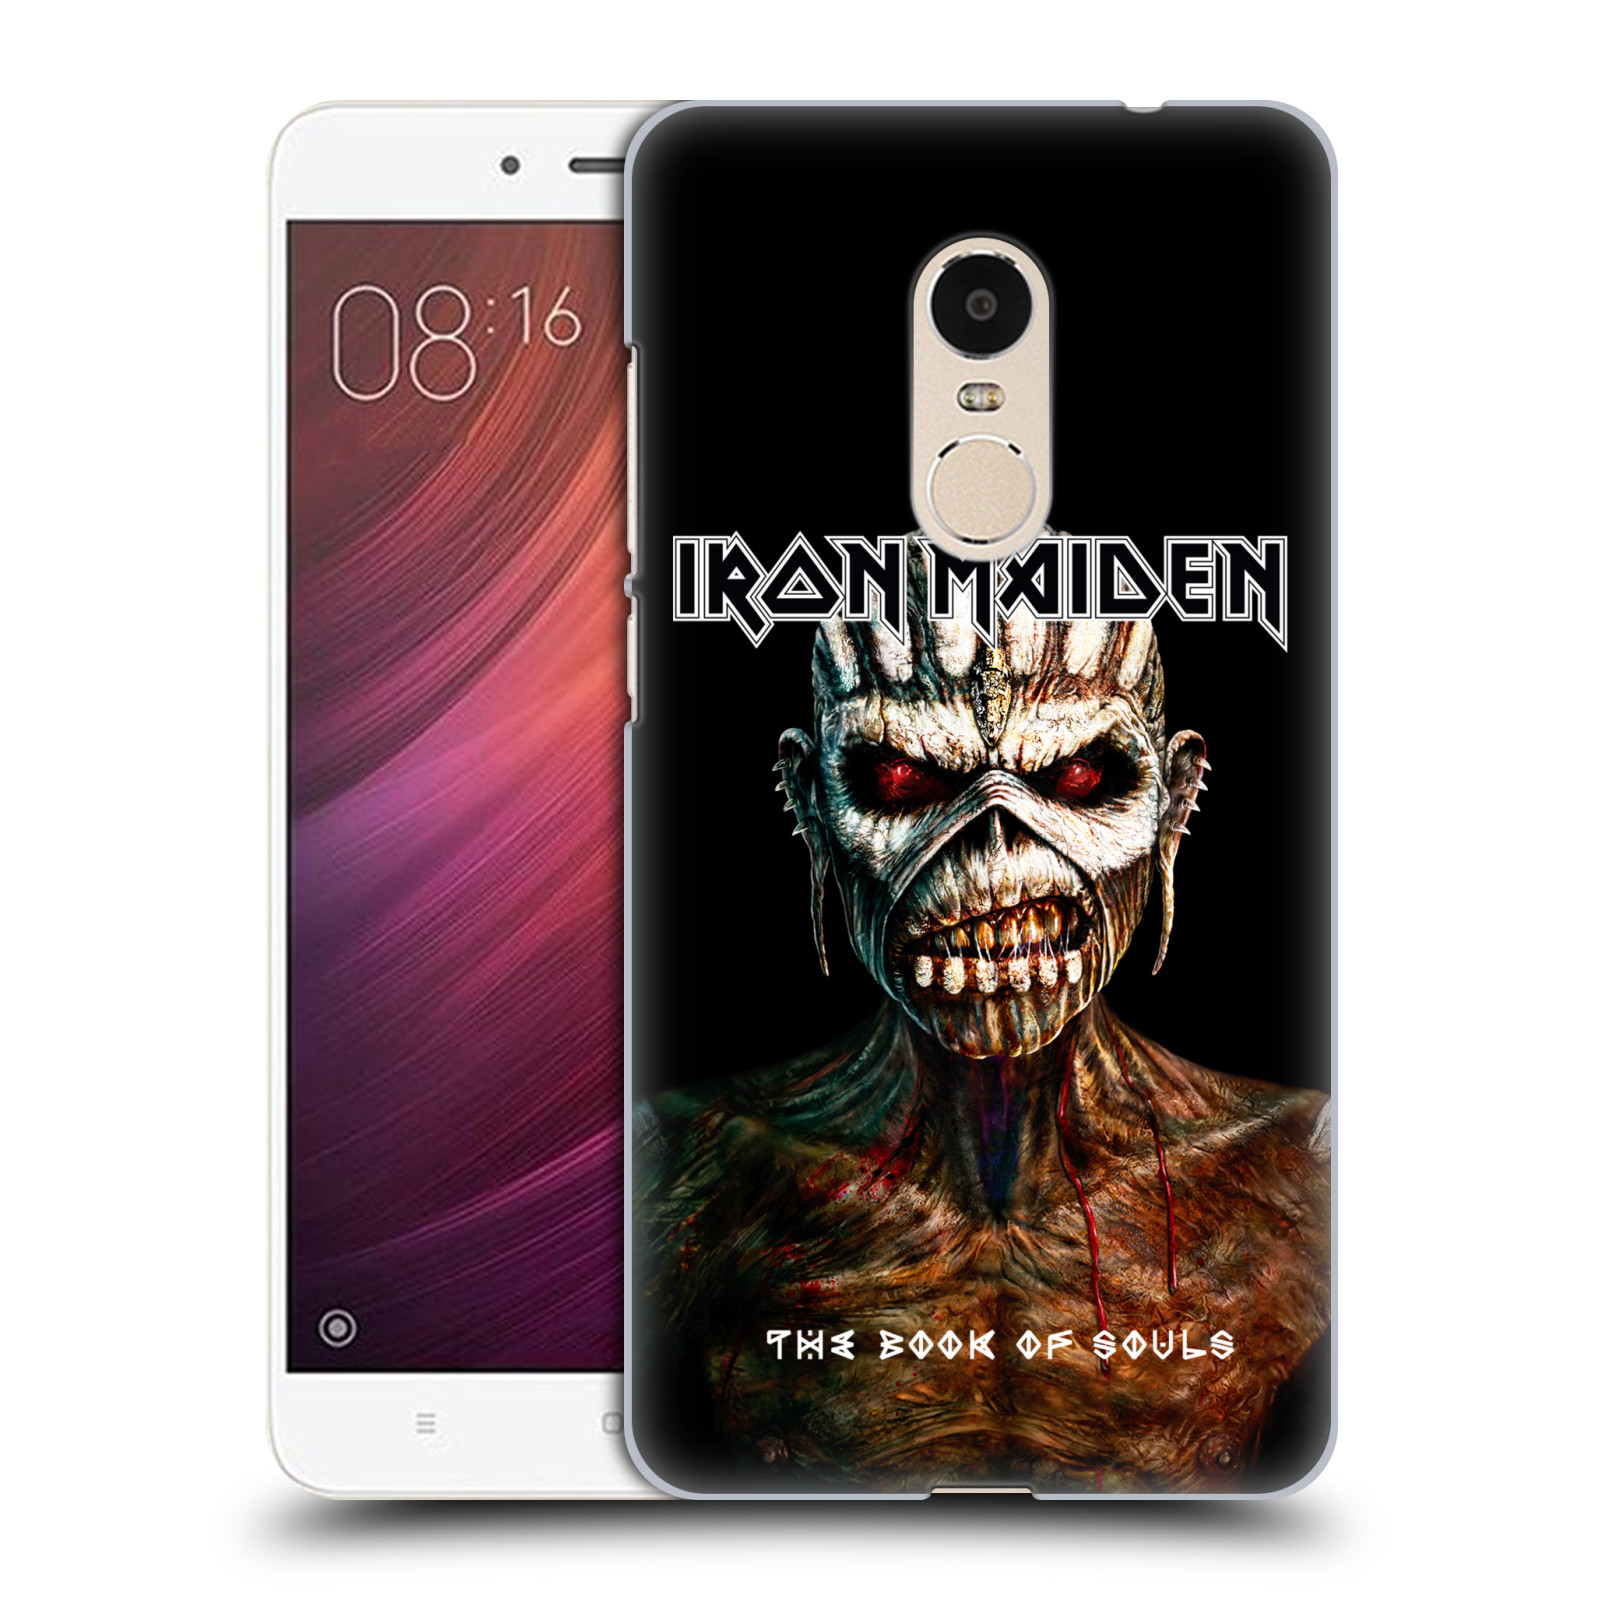 Plastové pouzdro na mobil Xiaomi Redmi Note 4 - Head Case - Iron Maiden - The Book Of Souls